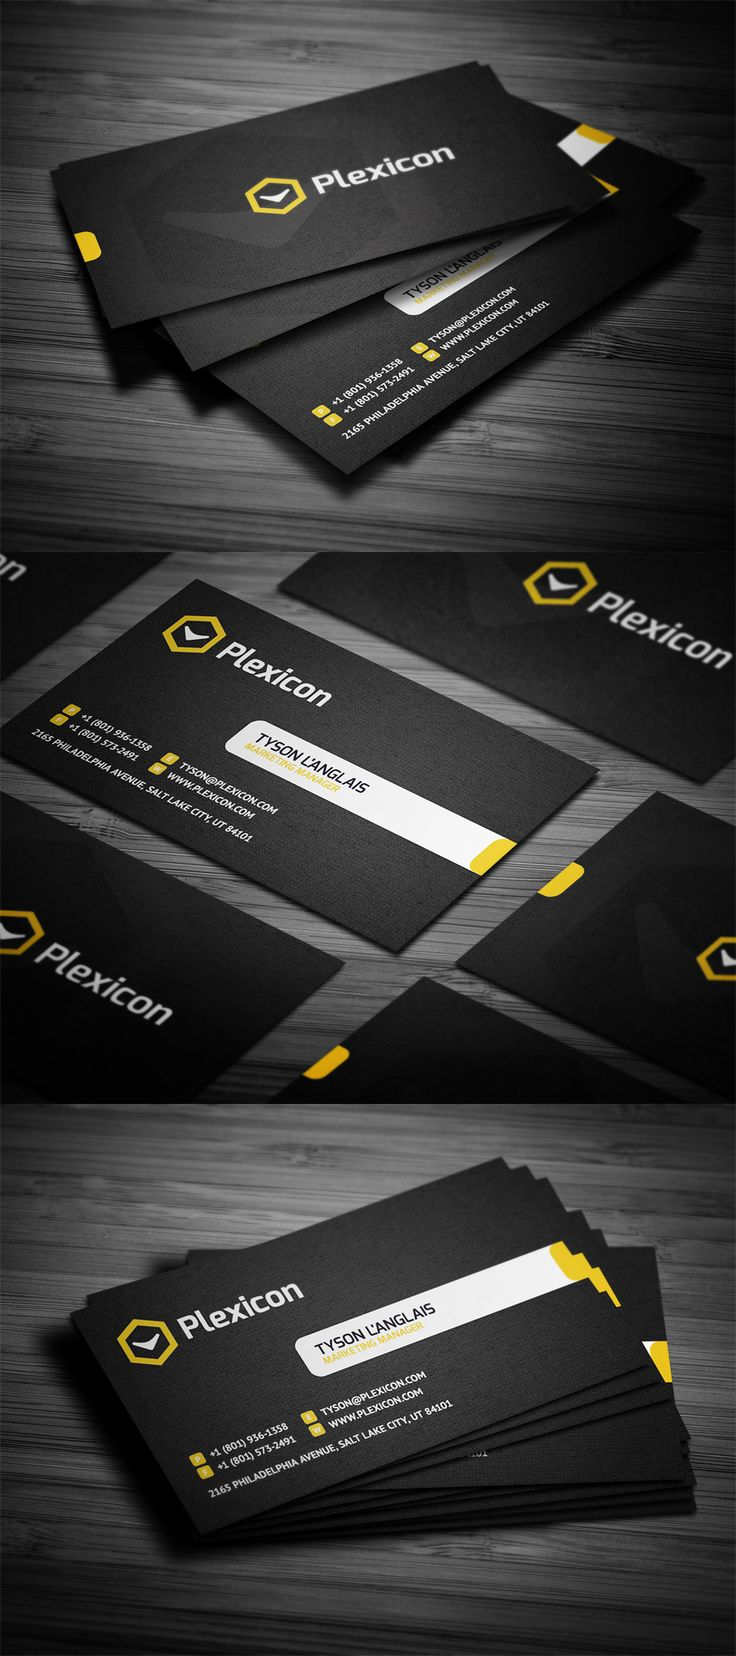 50 creative corporate business card design examples part 2 business card business card business card corporate business card corporate business card - Graphic Design Business Ideas